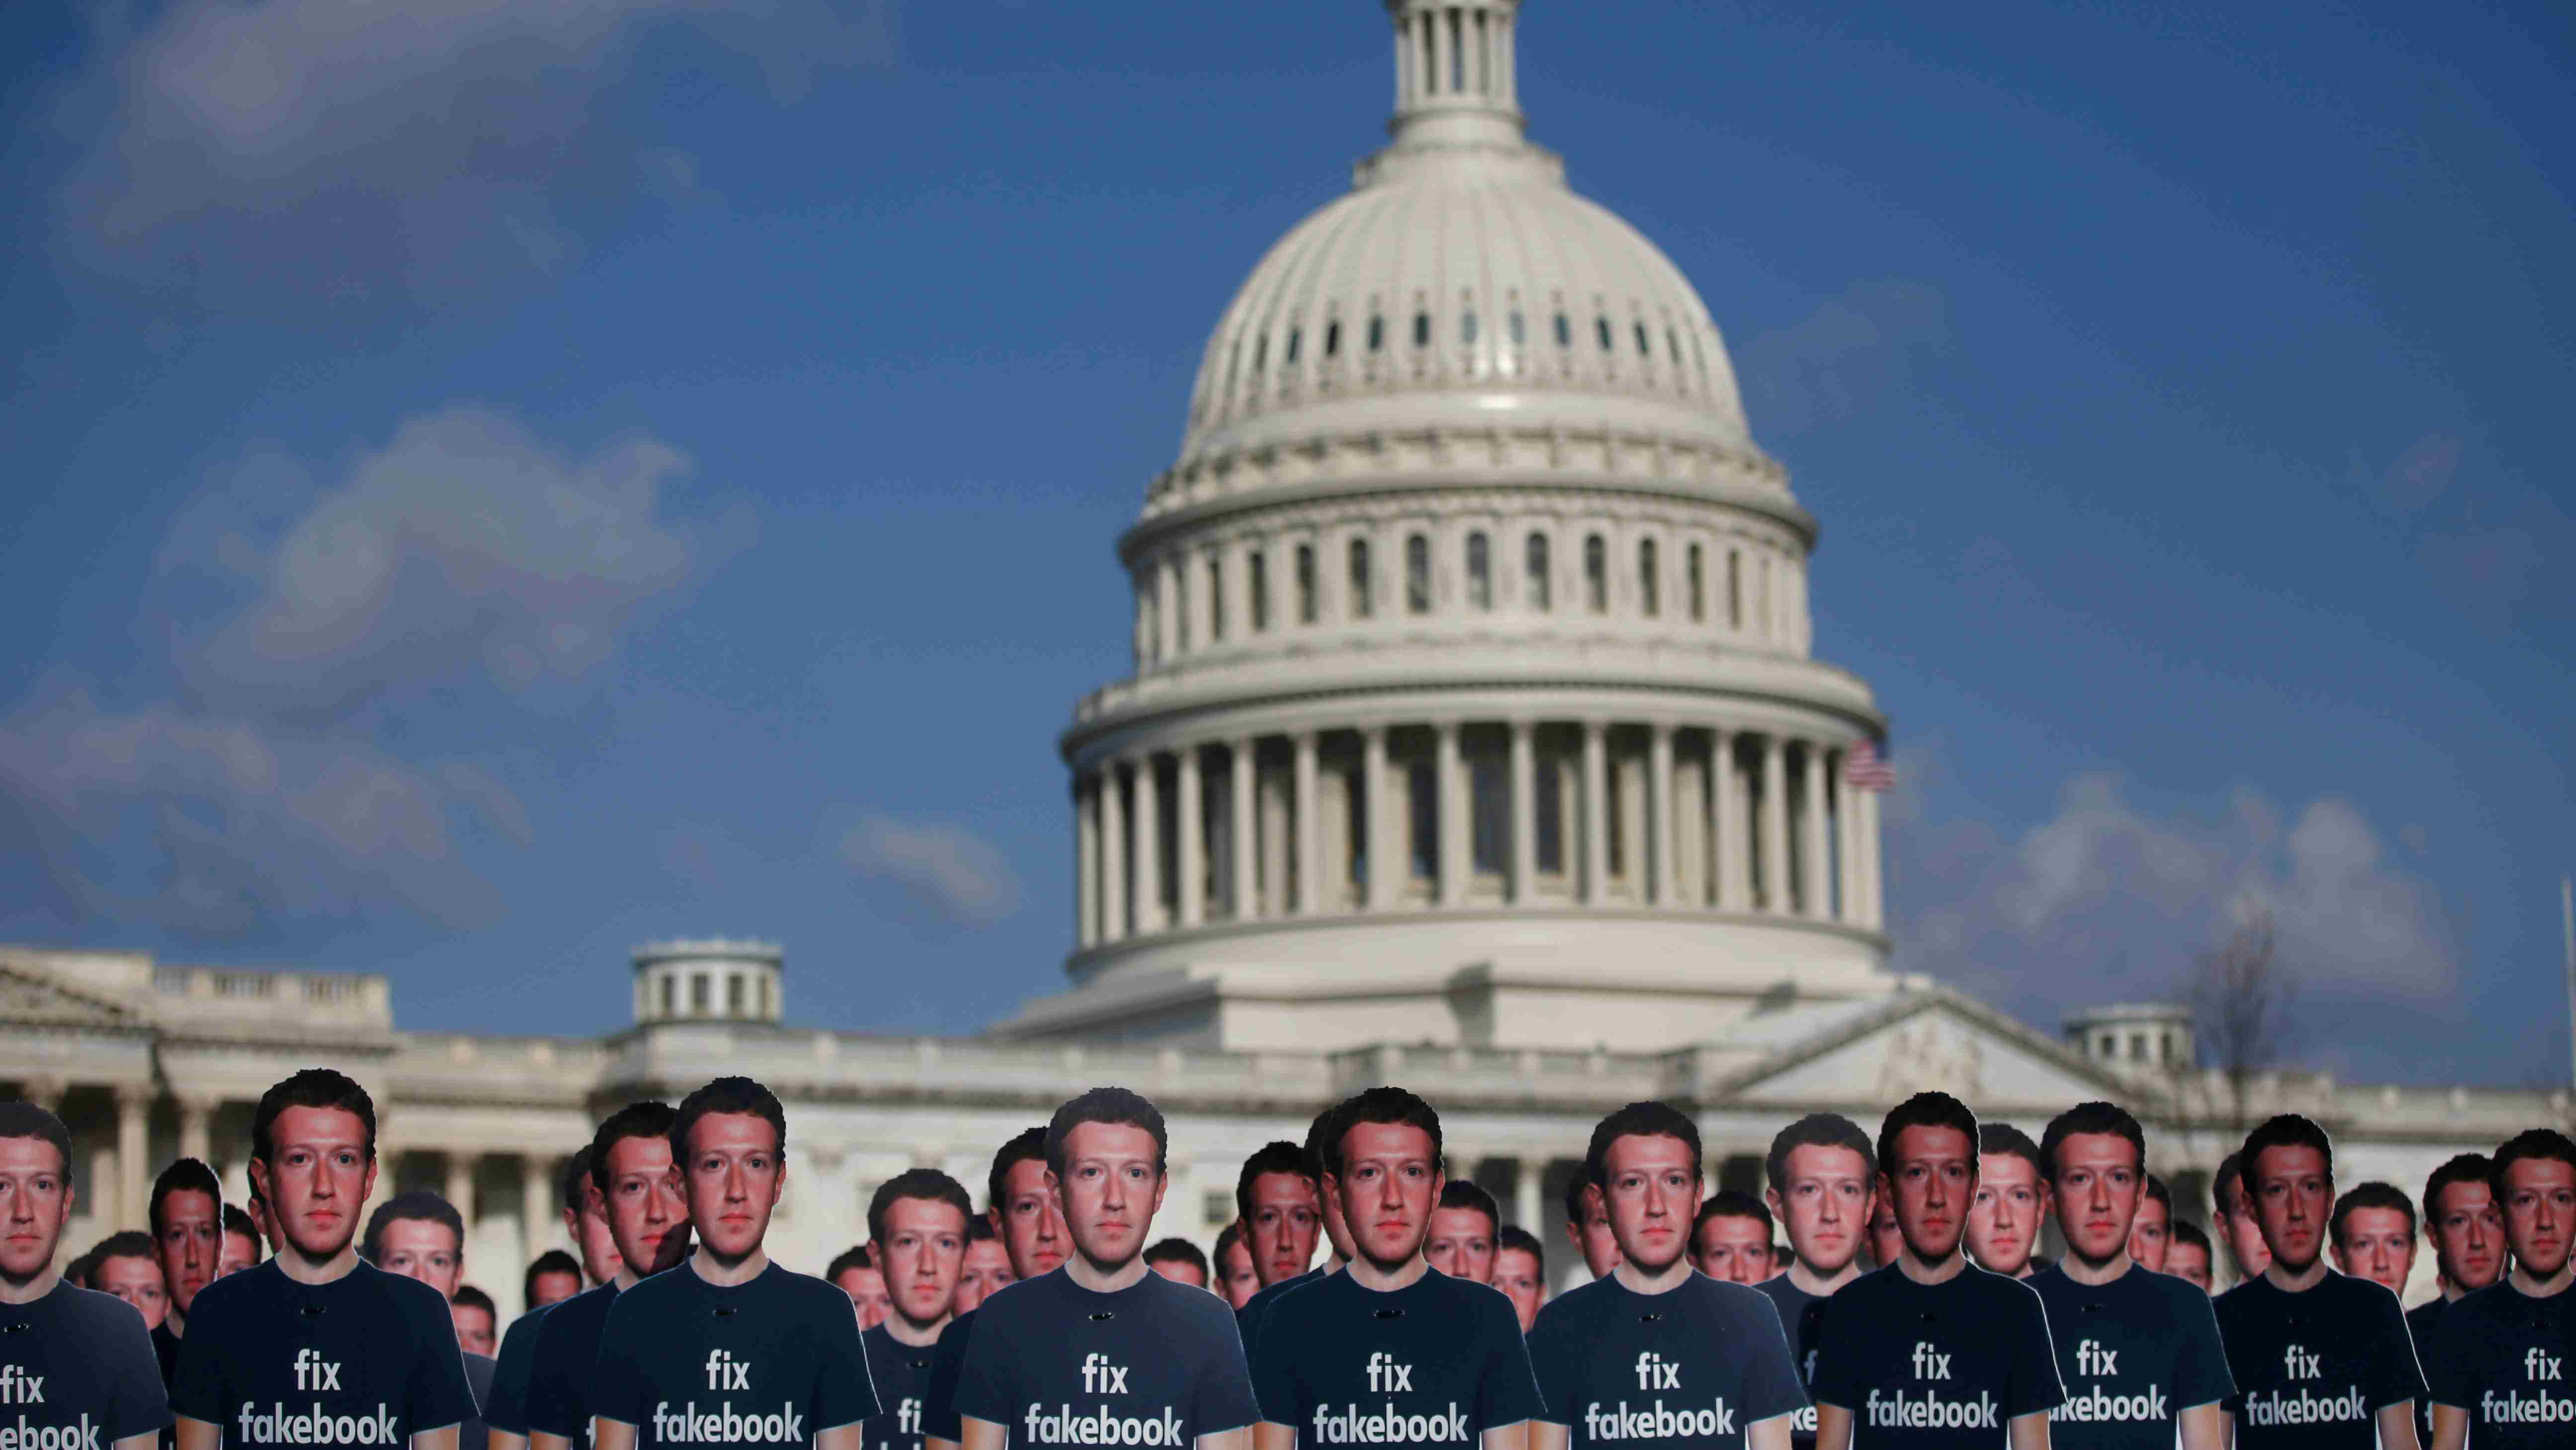 Dozens of cardboard cut-outs of Facebook CEO Mark Zuckerberg sit outside of the U.S. Capitol Building as part of an Avaaz.org protest in Washington, U.S., April 10, 2018. REUTERS/Leah Millis - RC1CA8A95B60